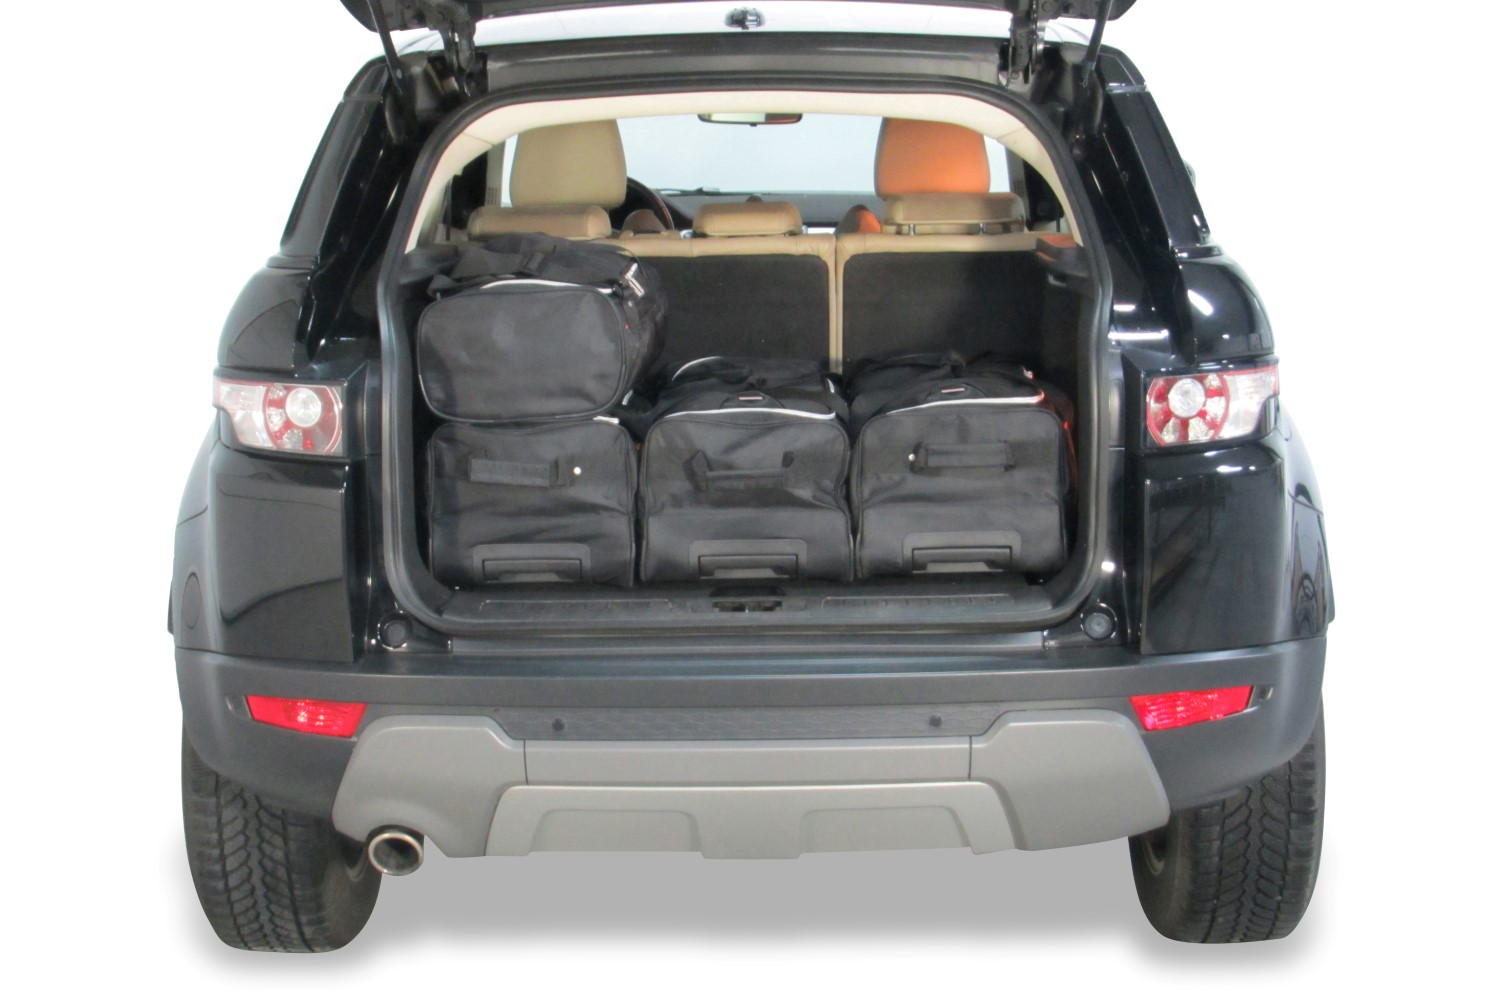 range rover evoque range rover evoque l538 2011 heden car bags reistassenset. Black Bedroom Furniture Sets. Home Design Ideas